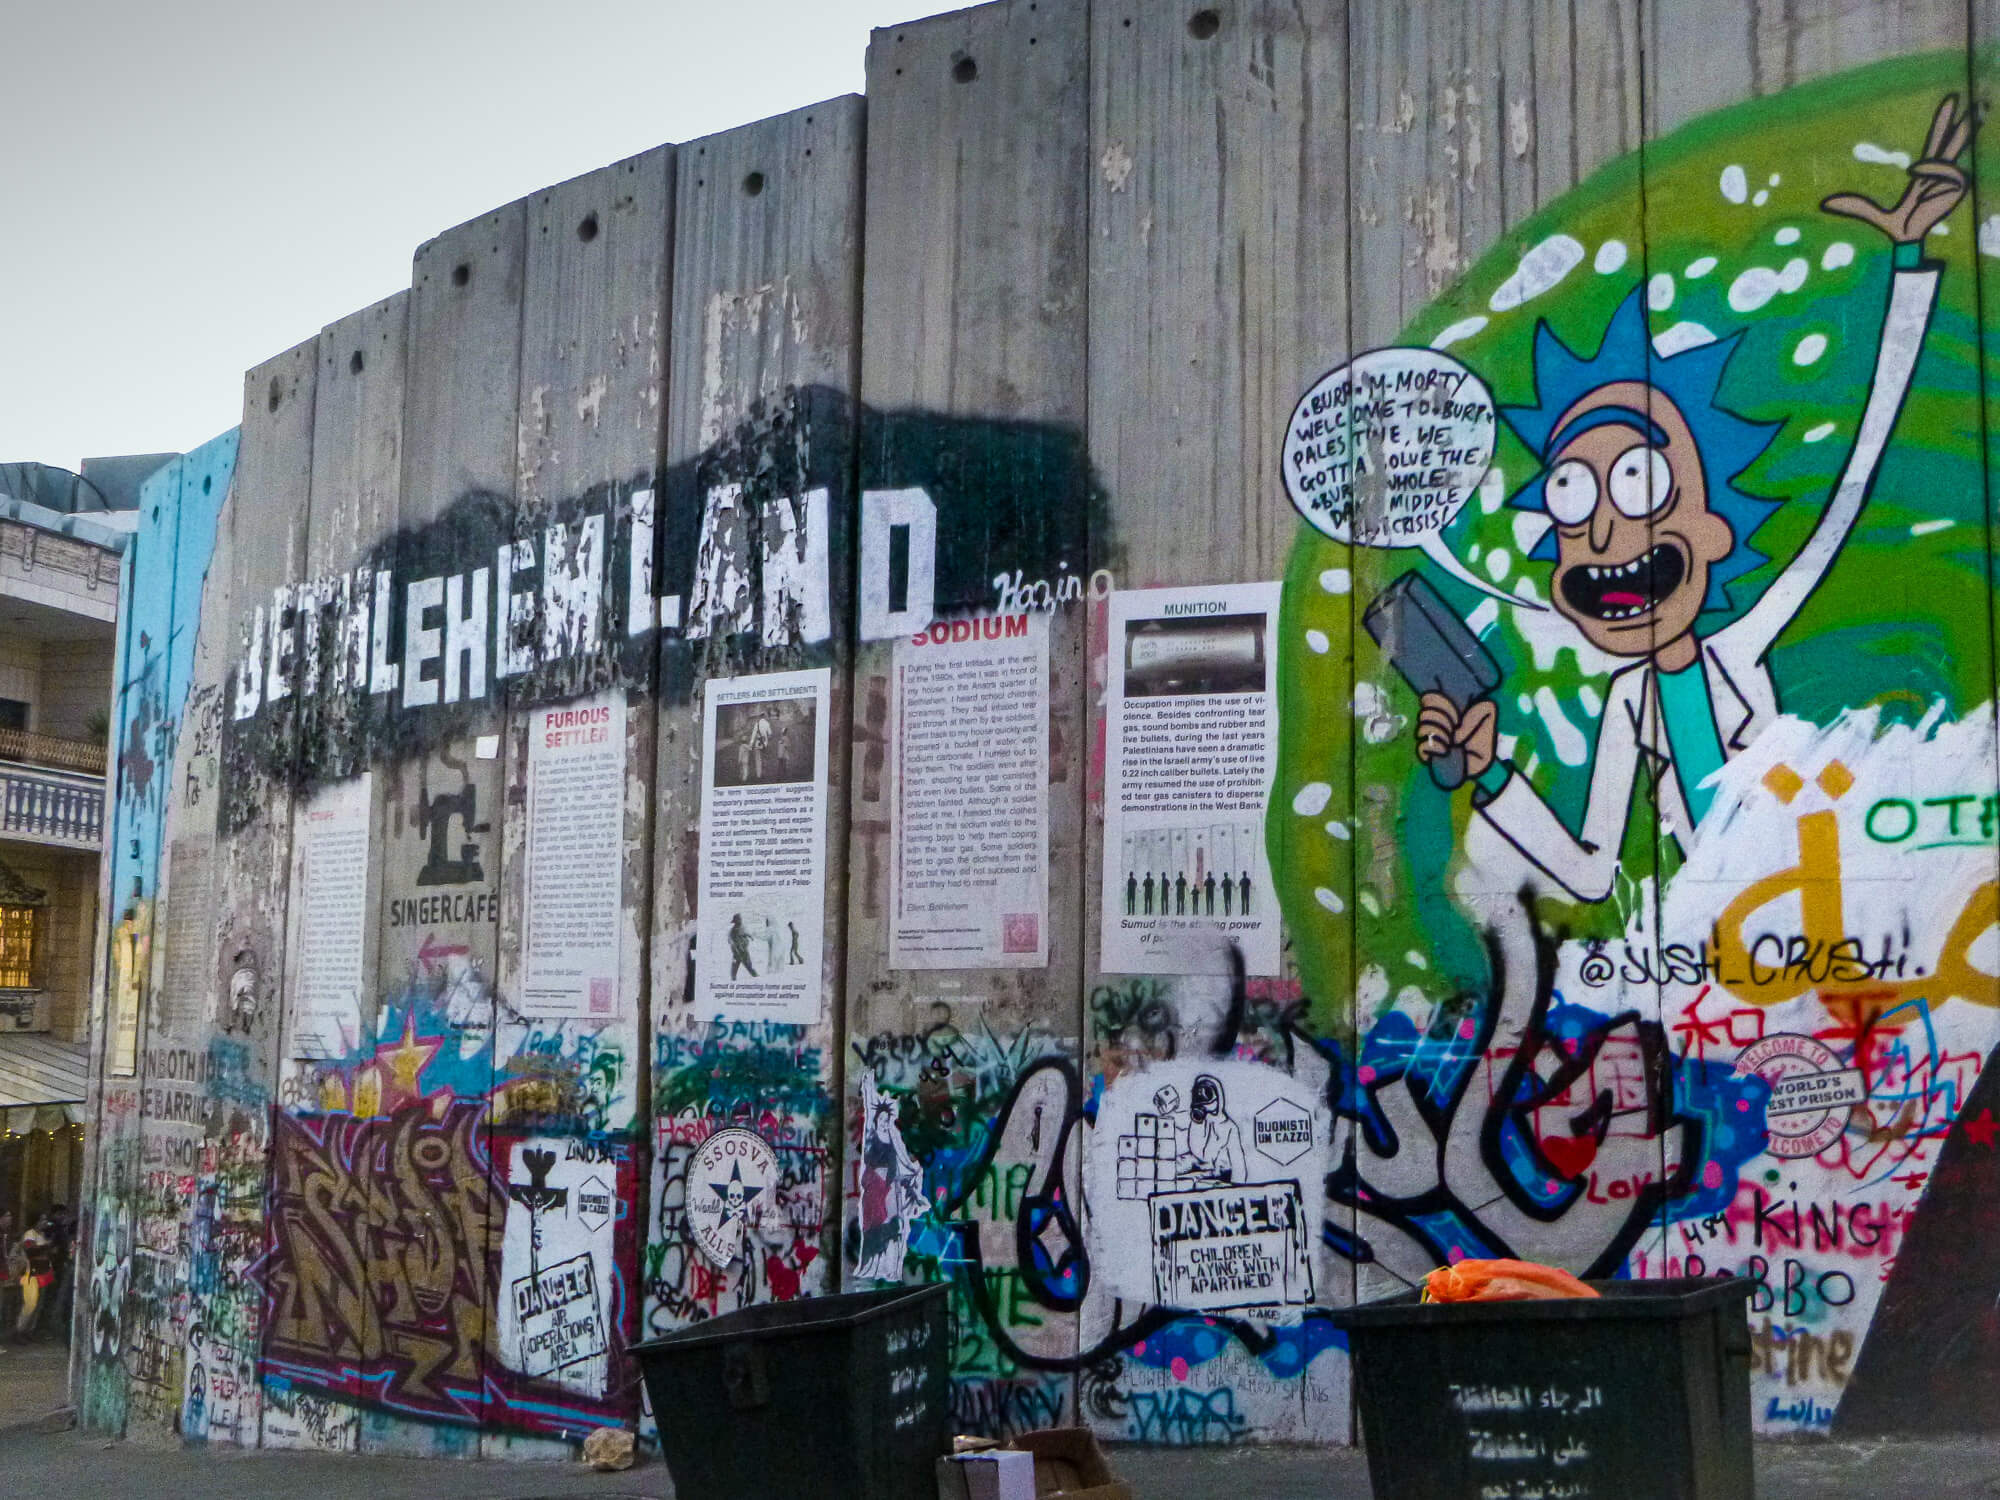 The occupation wall at Bethlehem - A famous place in Israel and Palestine